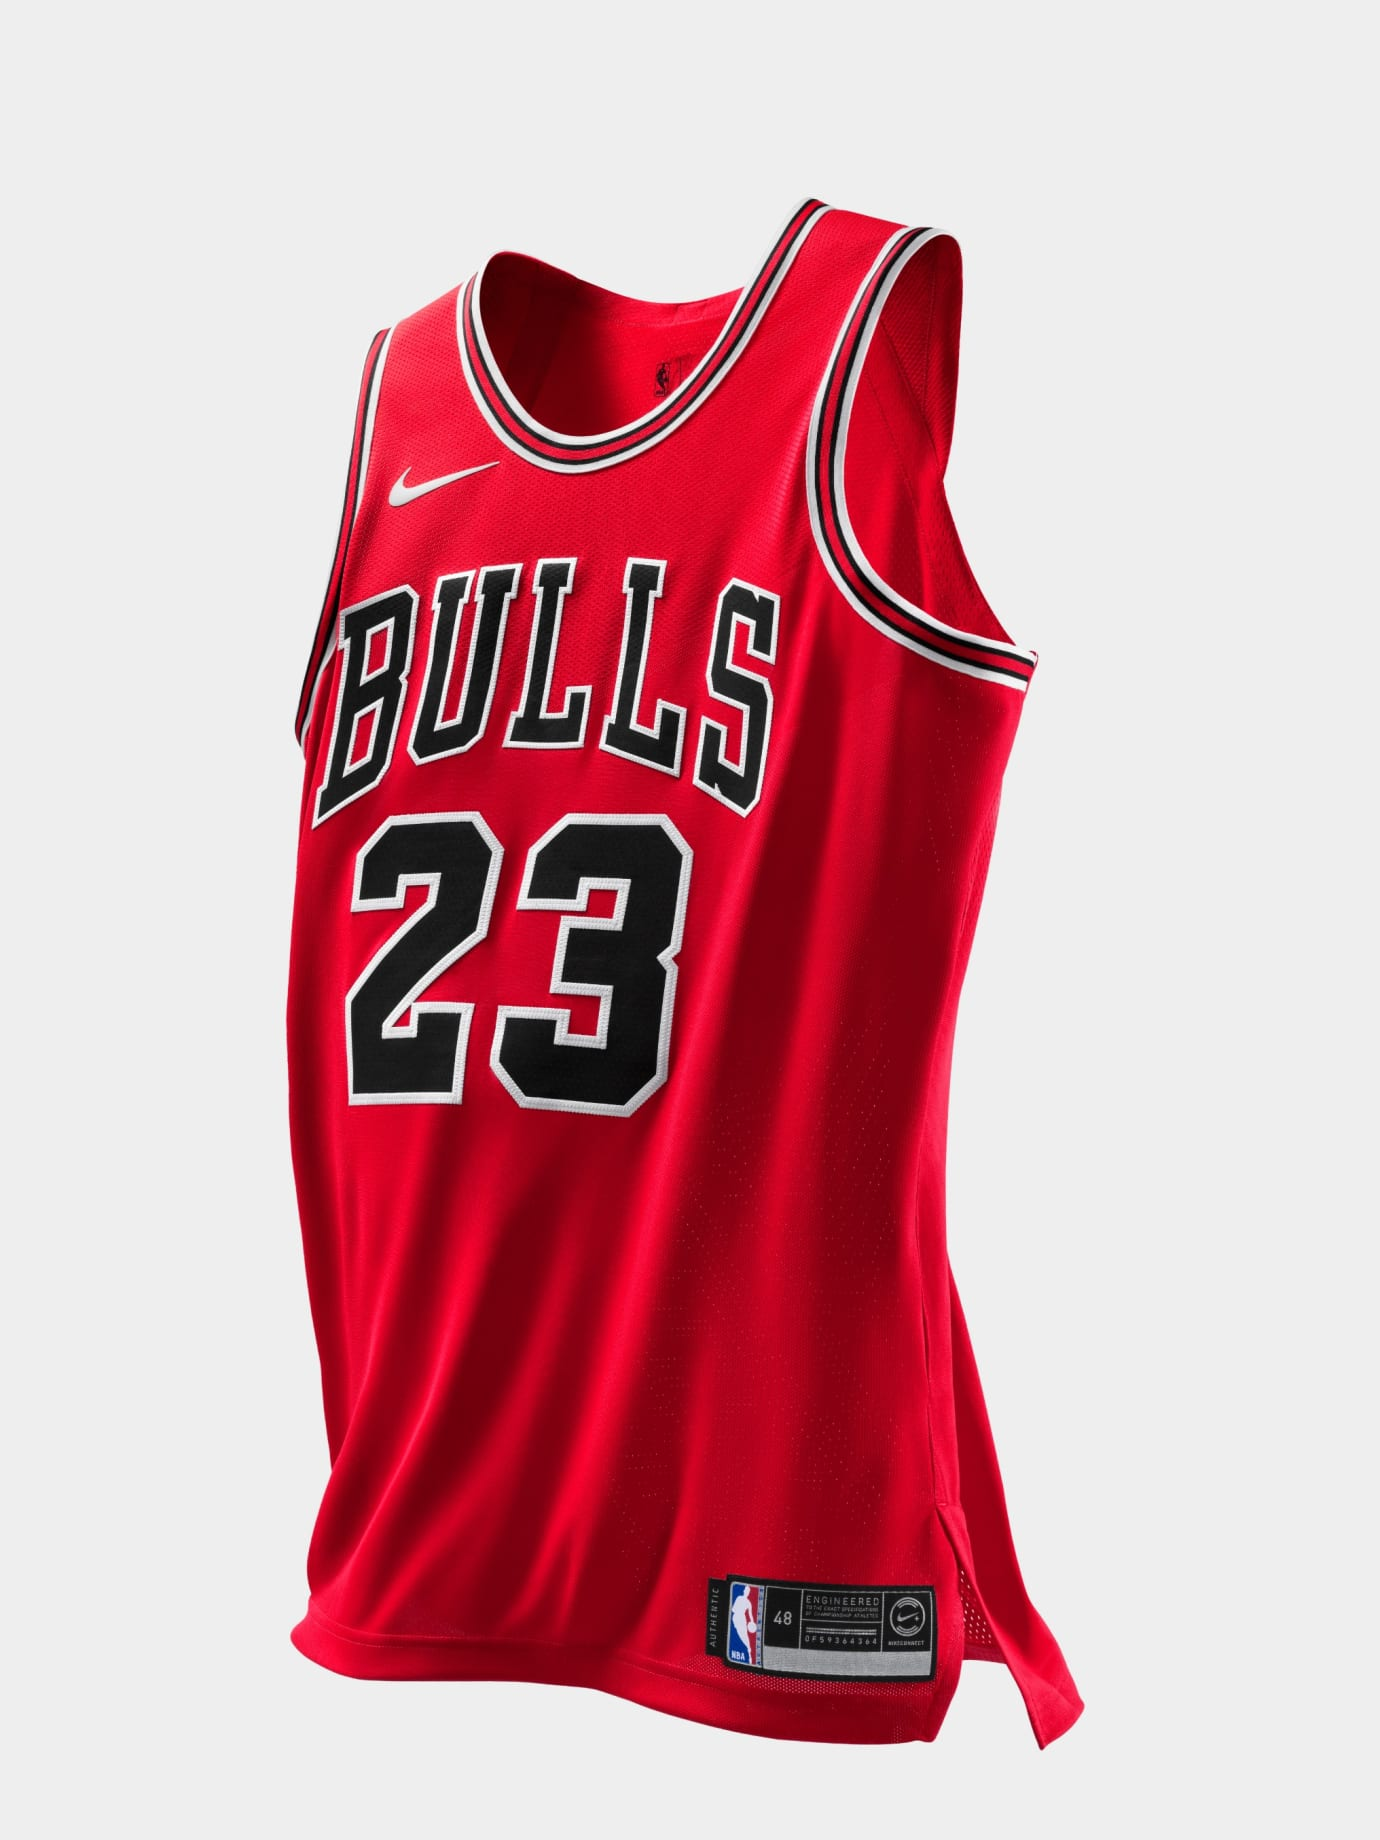 cba61bd29 Image via Nike Michael Jordan Chicago Bulls Last Shot Jersey (Authentic)